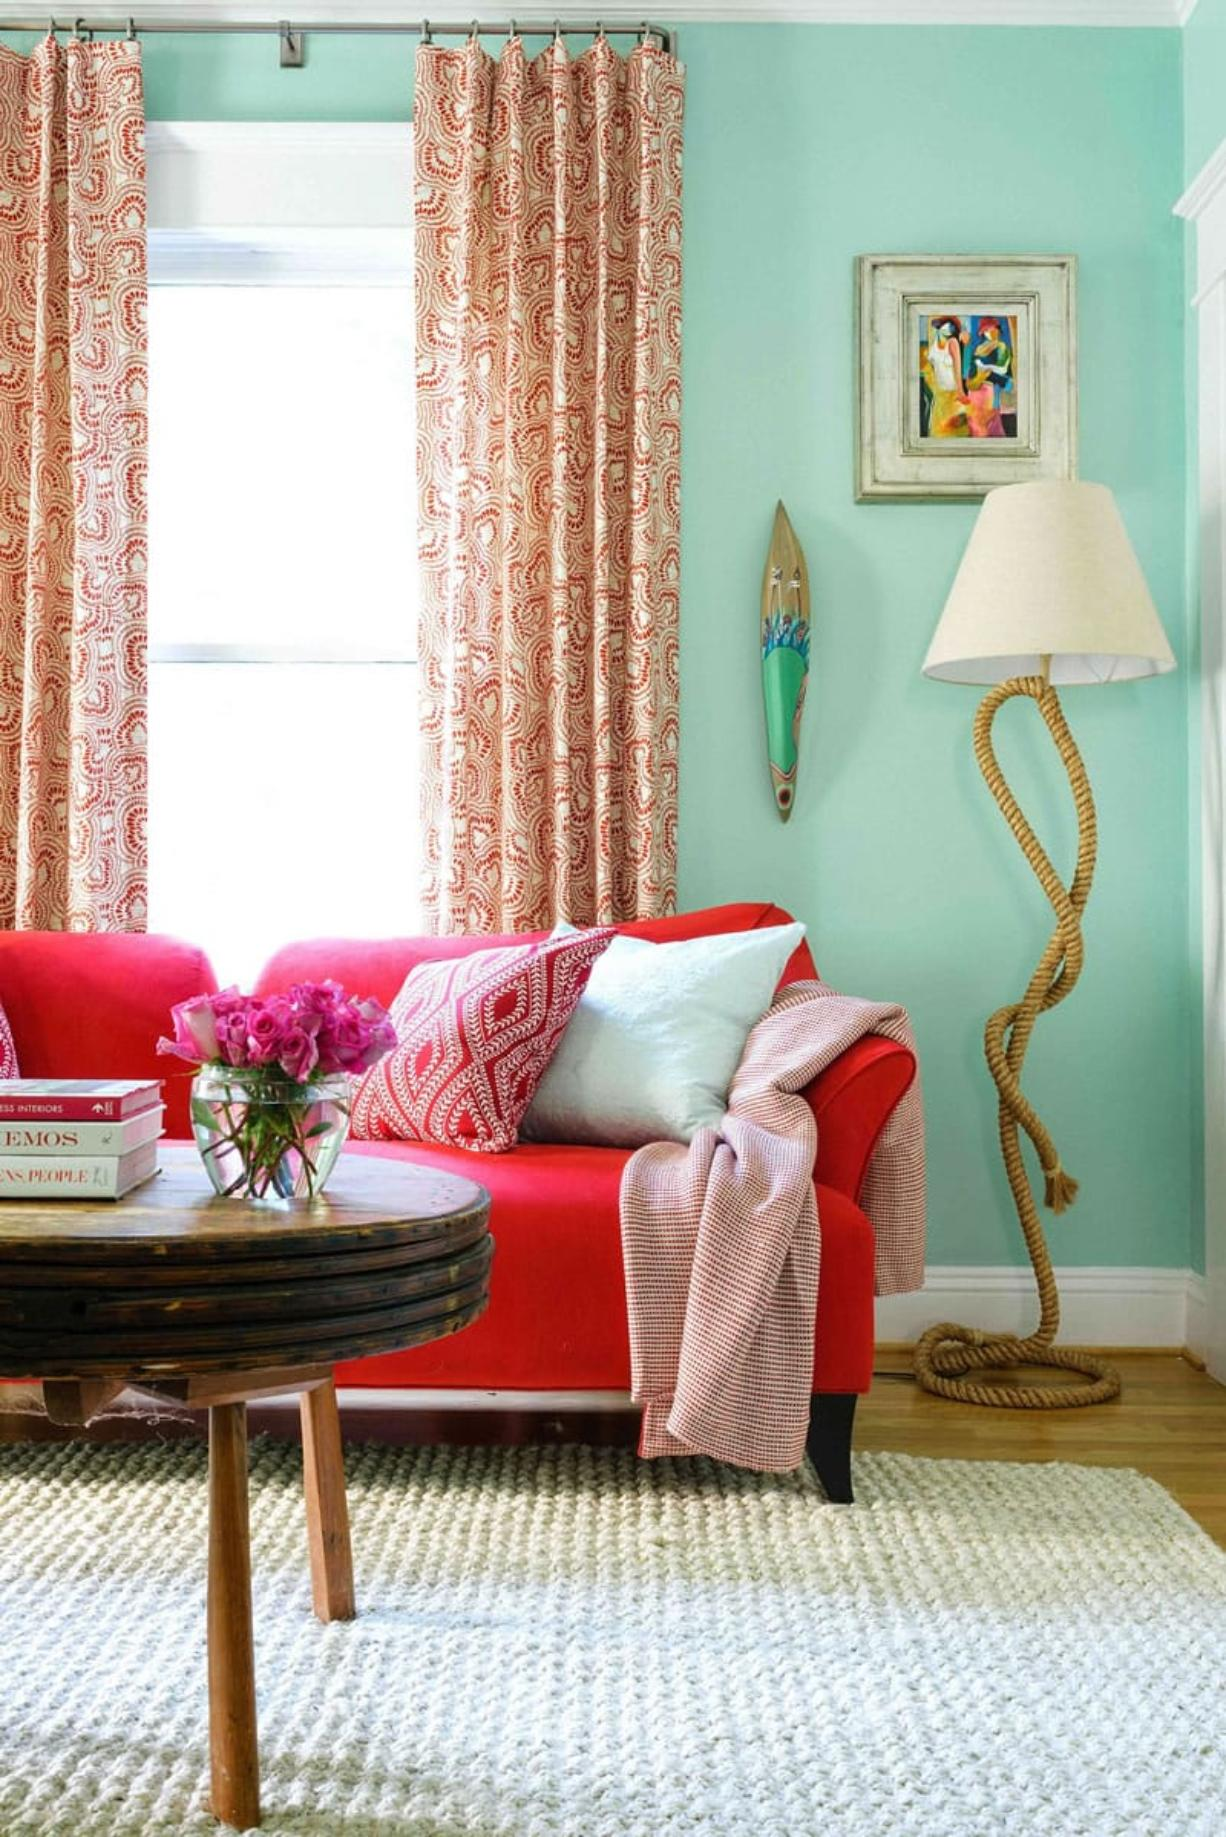 Embracing The New Feminine In Home